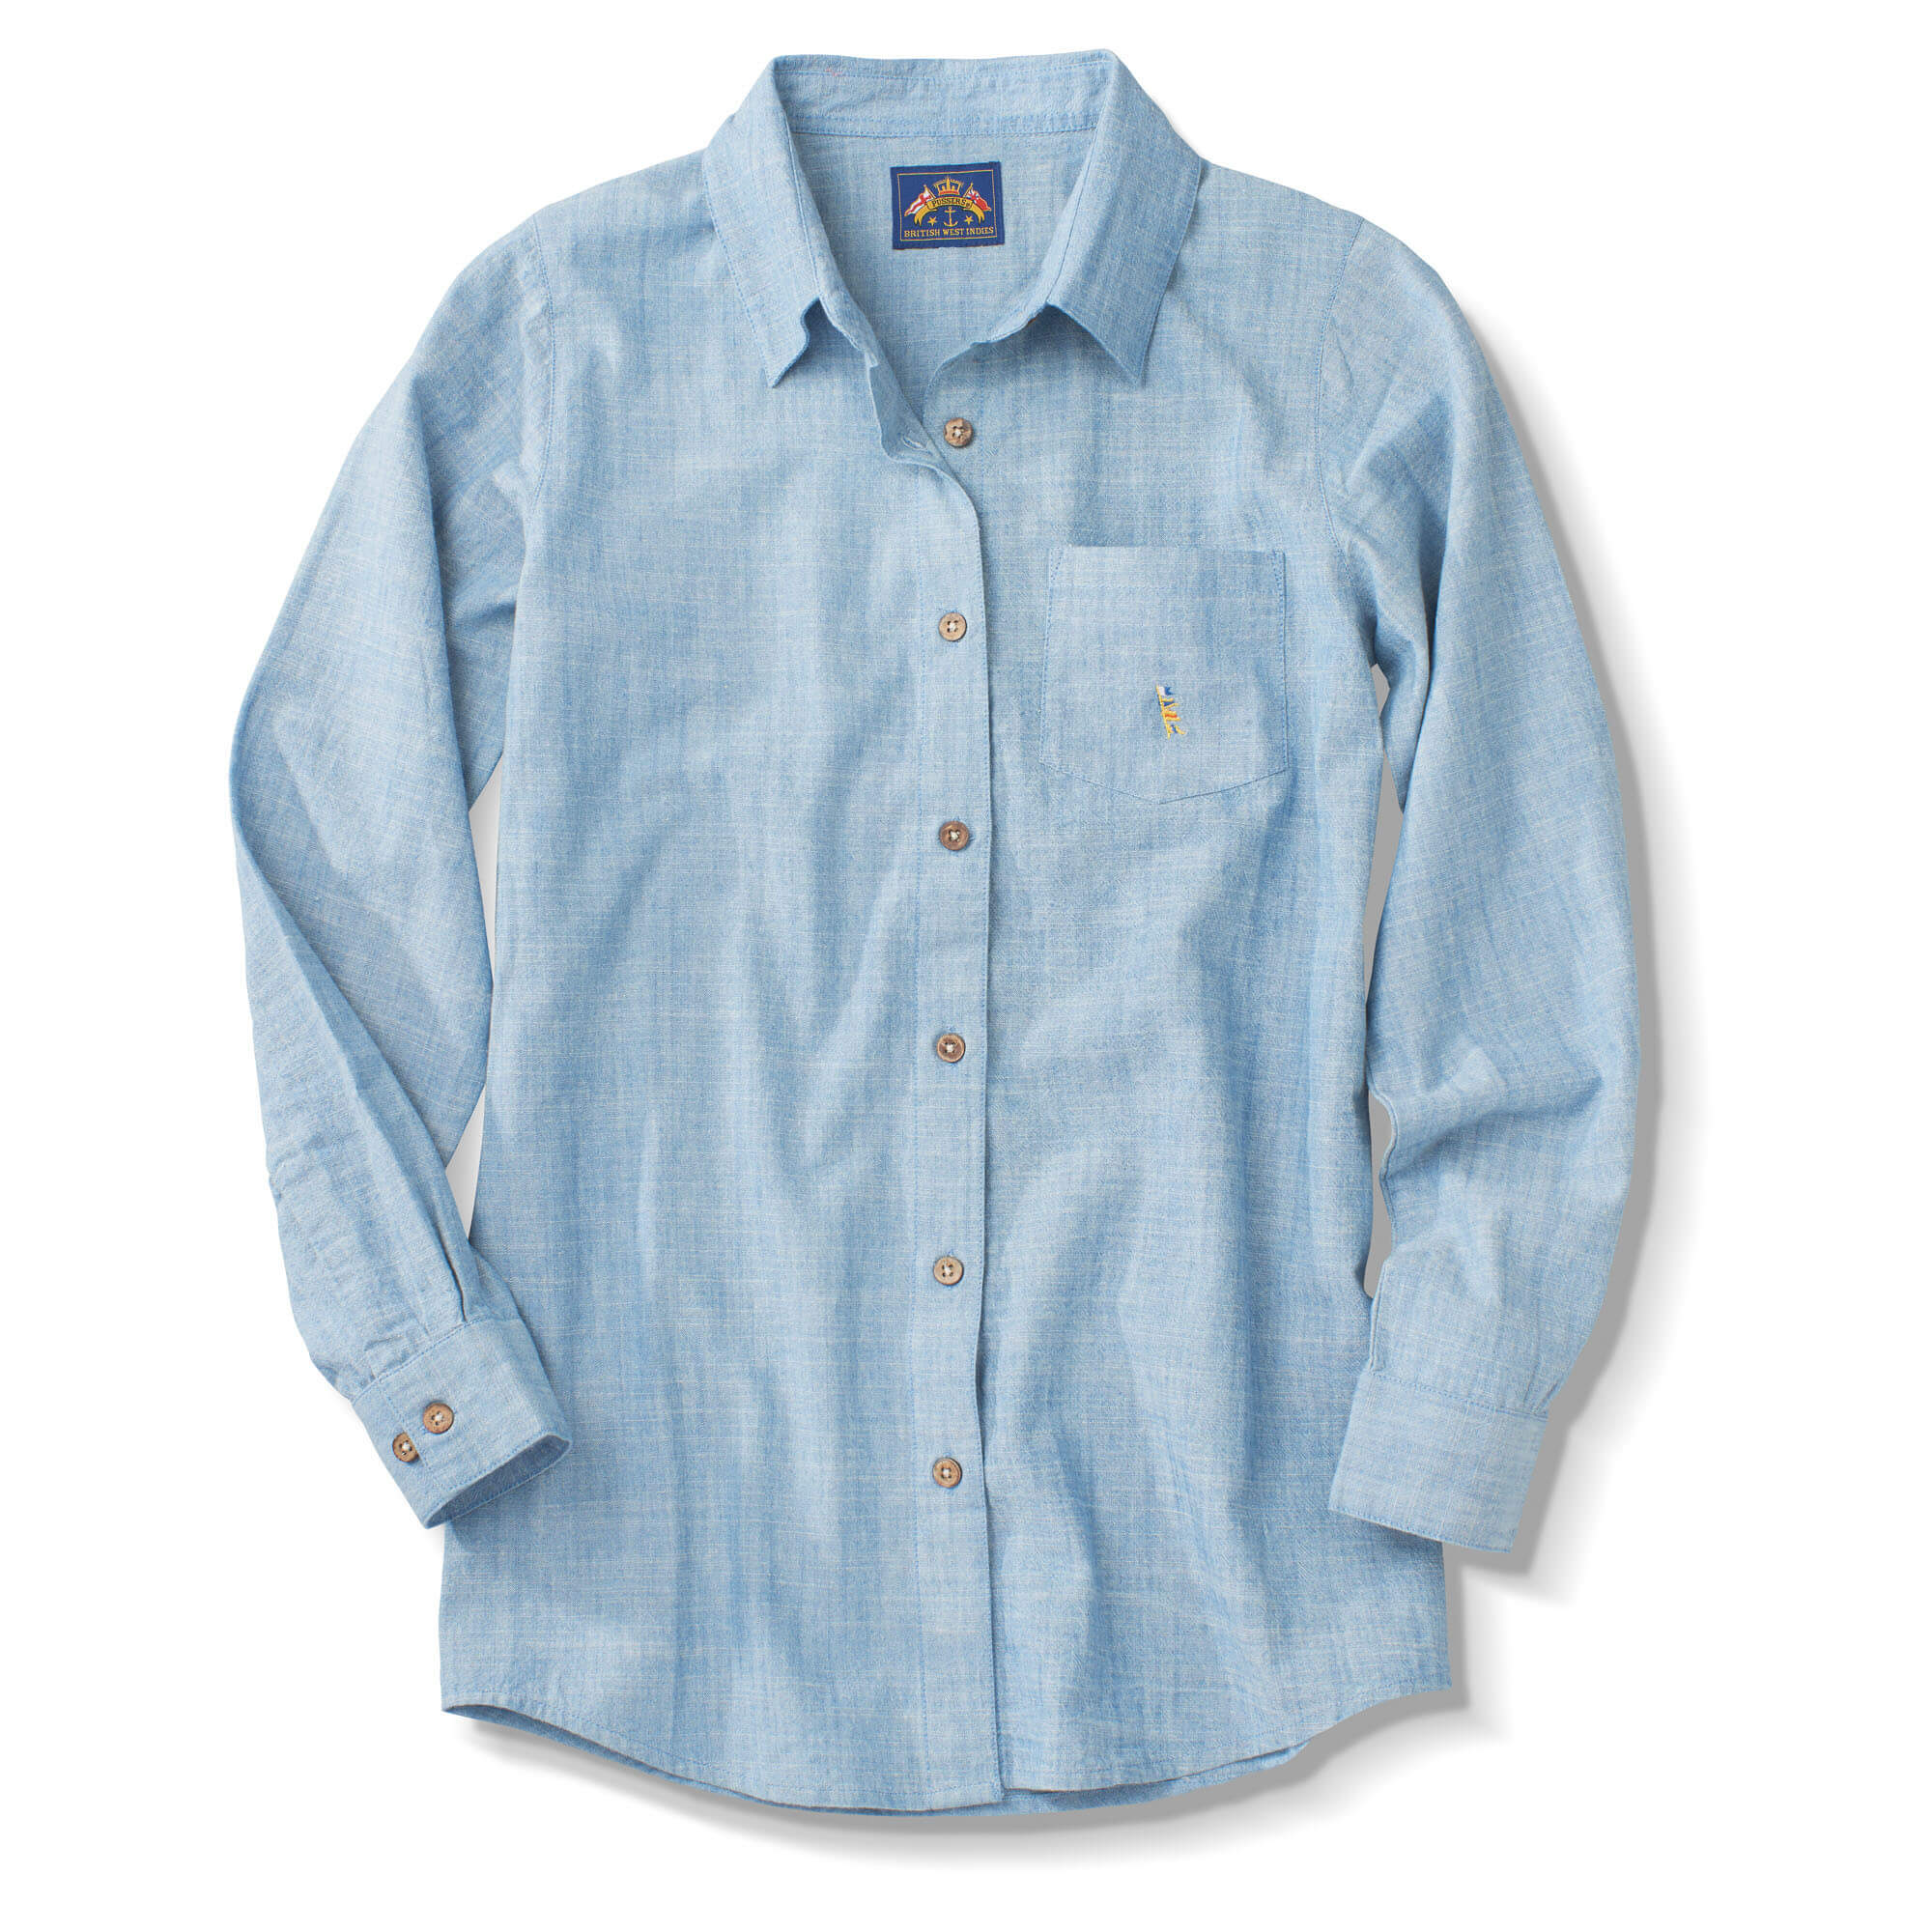 ddb56f1f95 Long Sleeve Classic Chambray